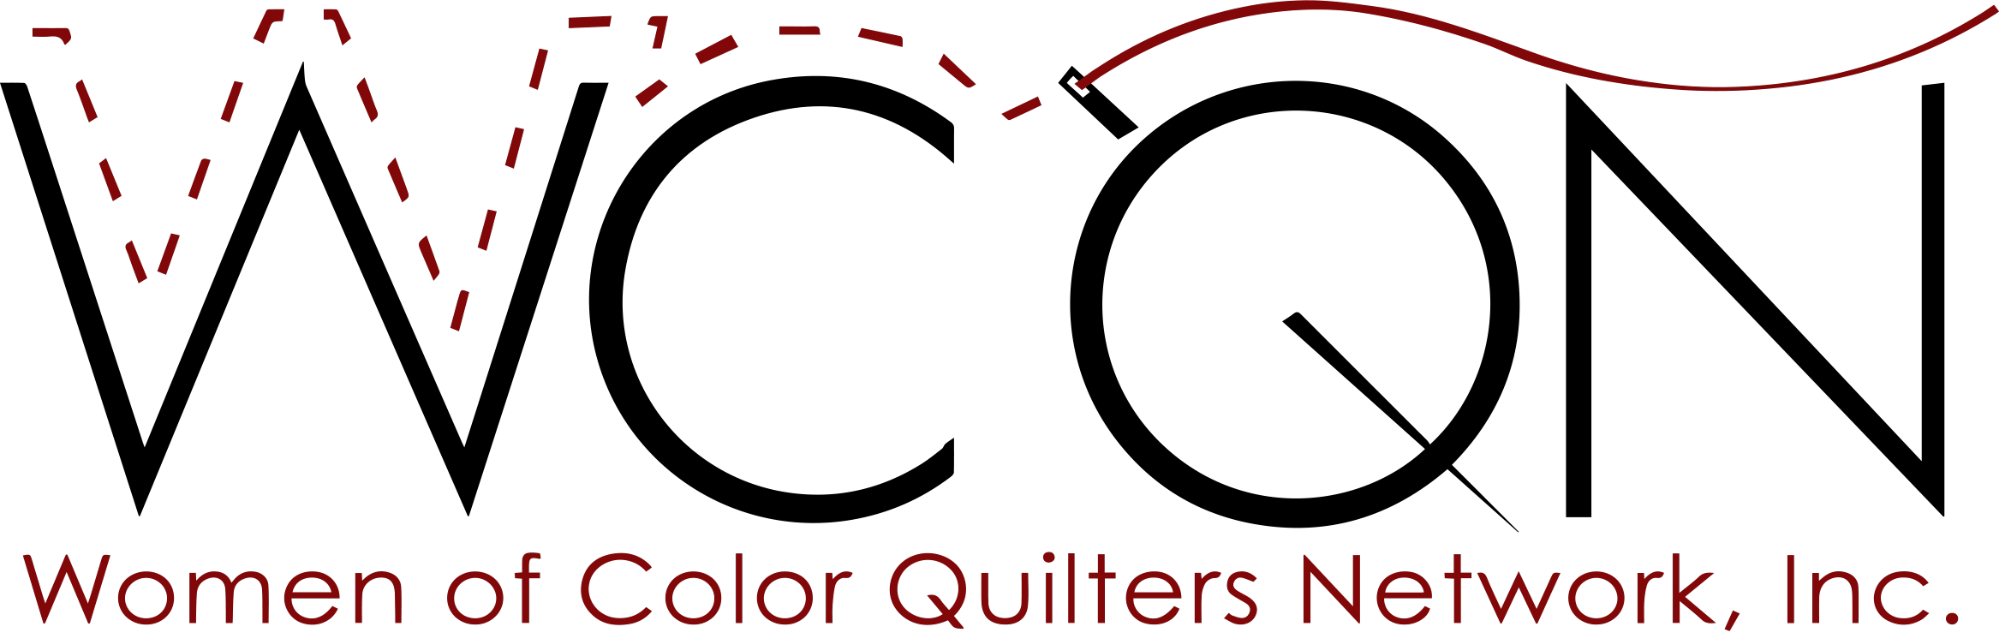 Women of Color Quilters Network logo